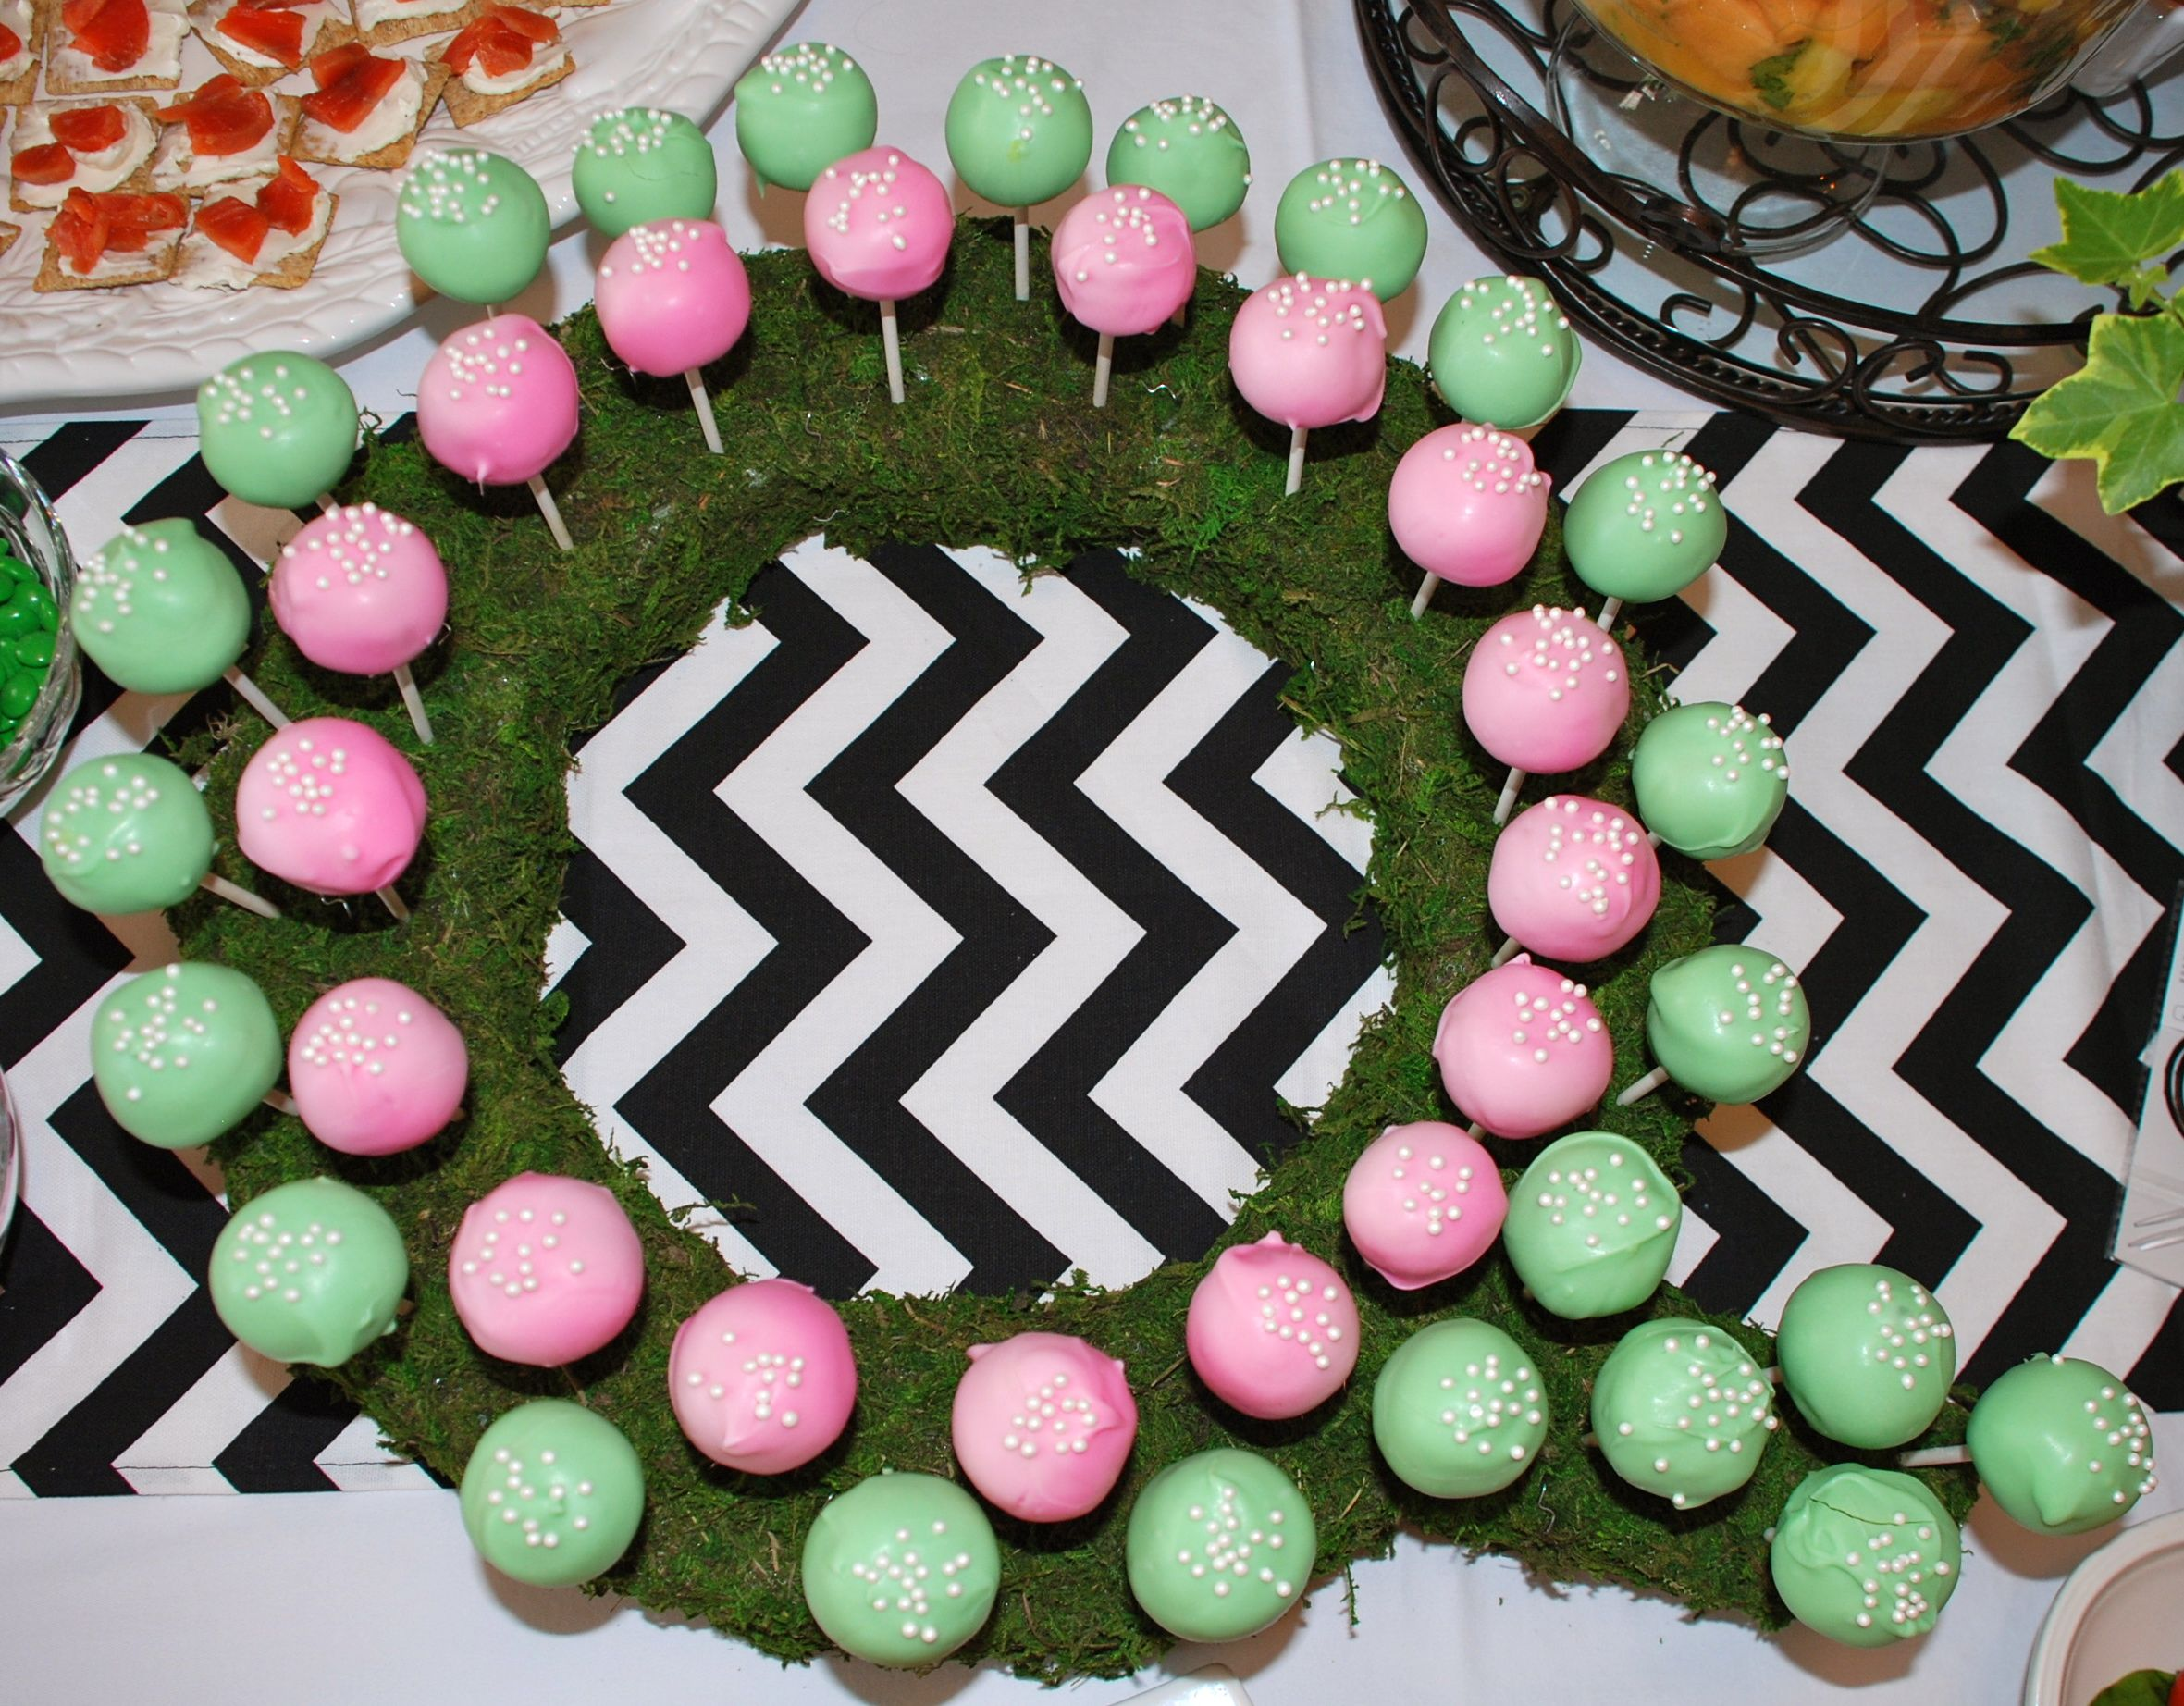 Last Name Initial Wreath Used As Cake Pop Holder Covered Foam